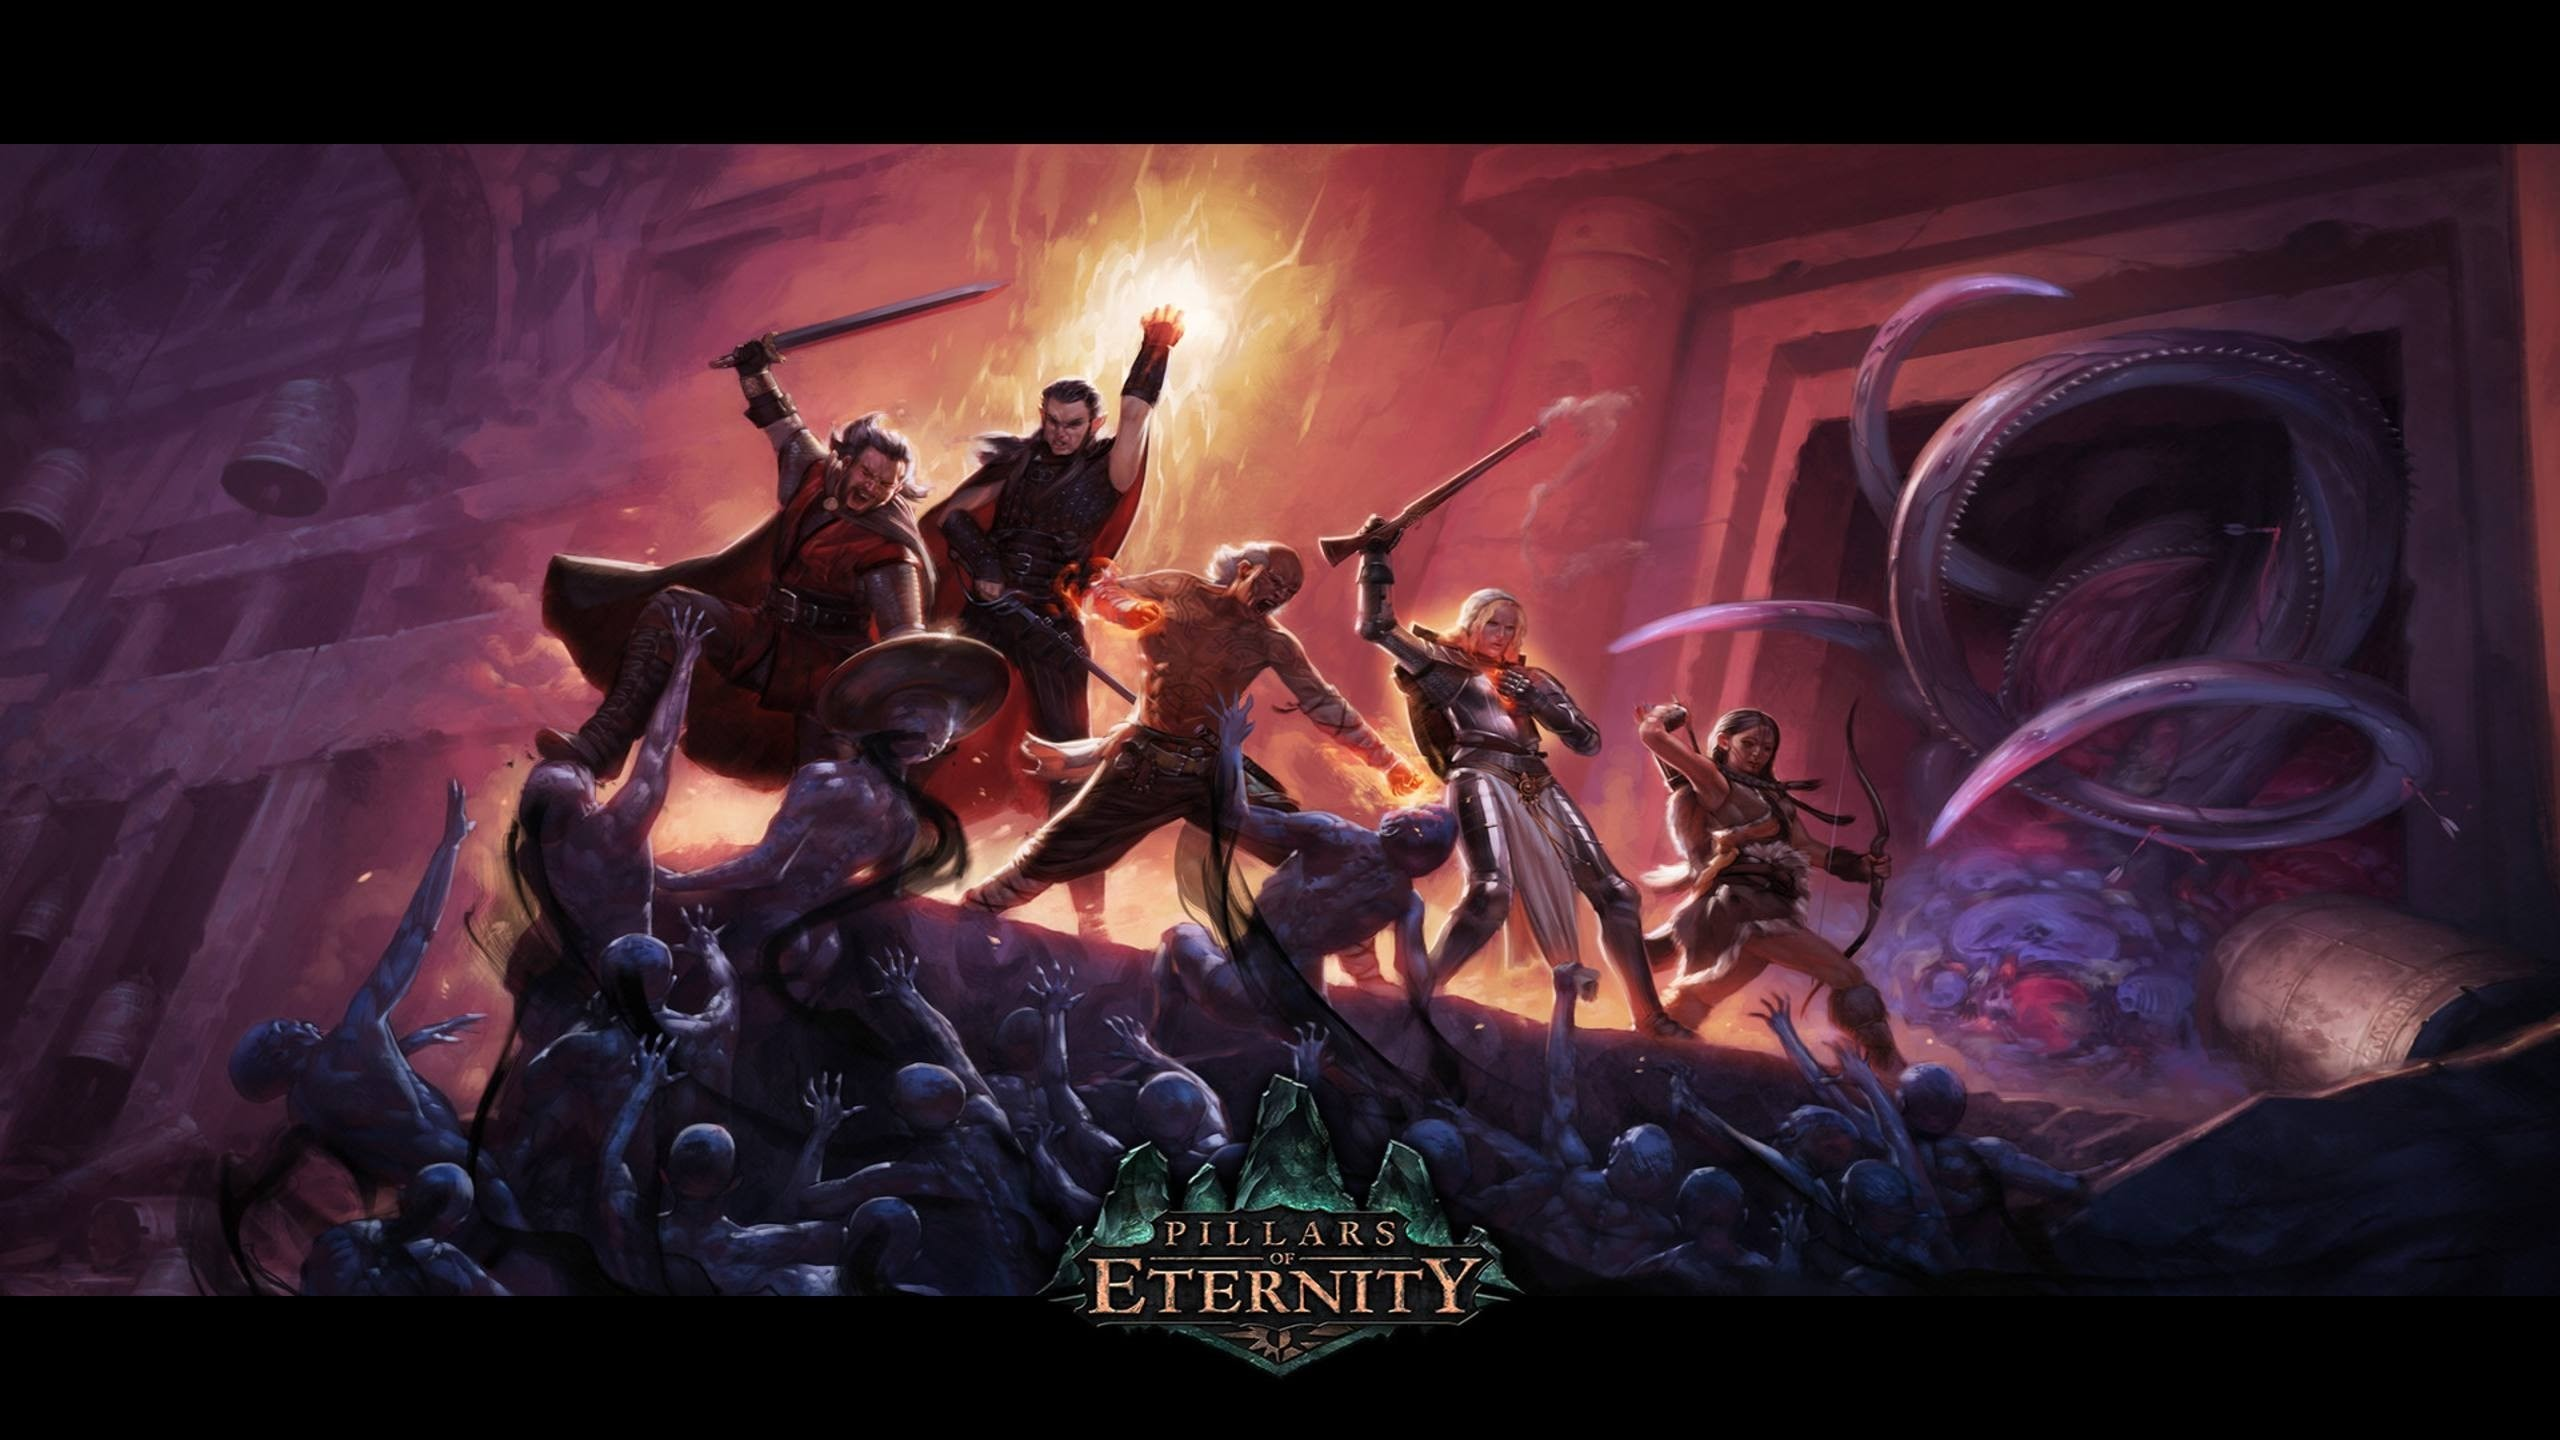 2560x1440 2017-03-16 - Desktop Backgrounds - pillars of eternity wallpaper - #1940892